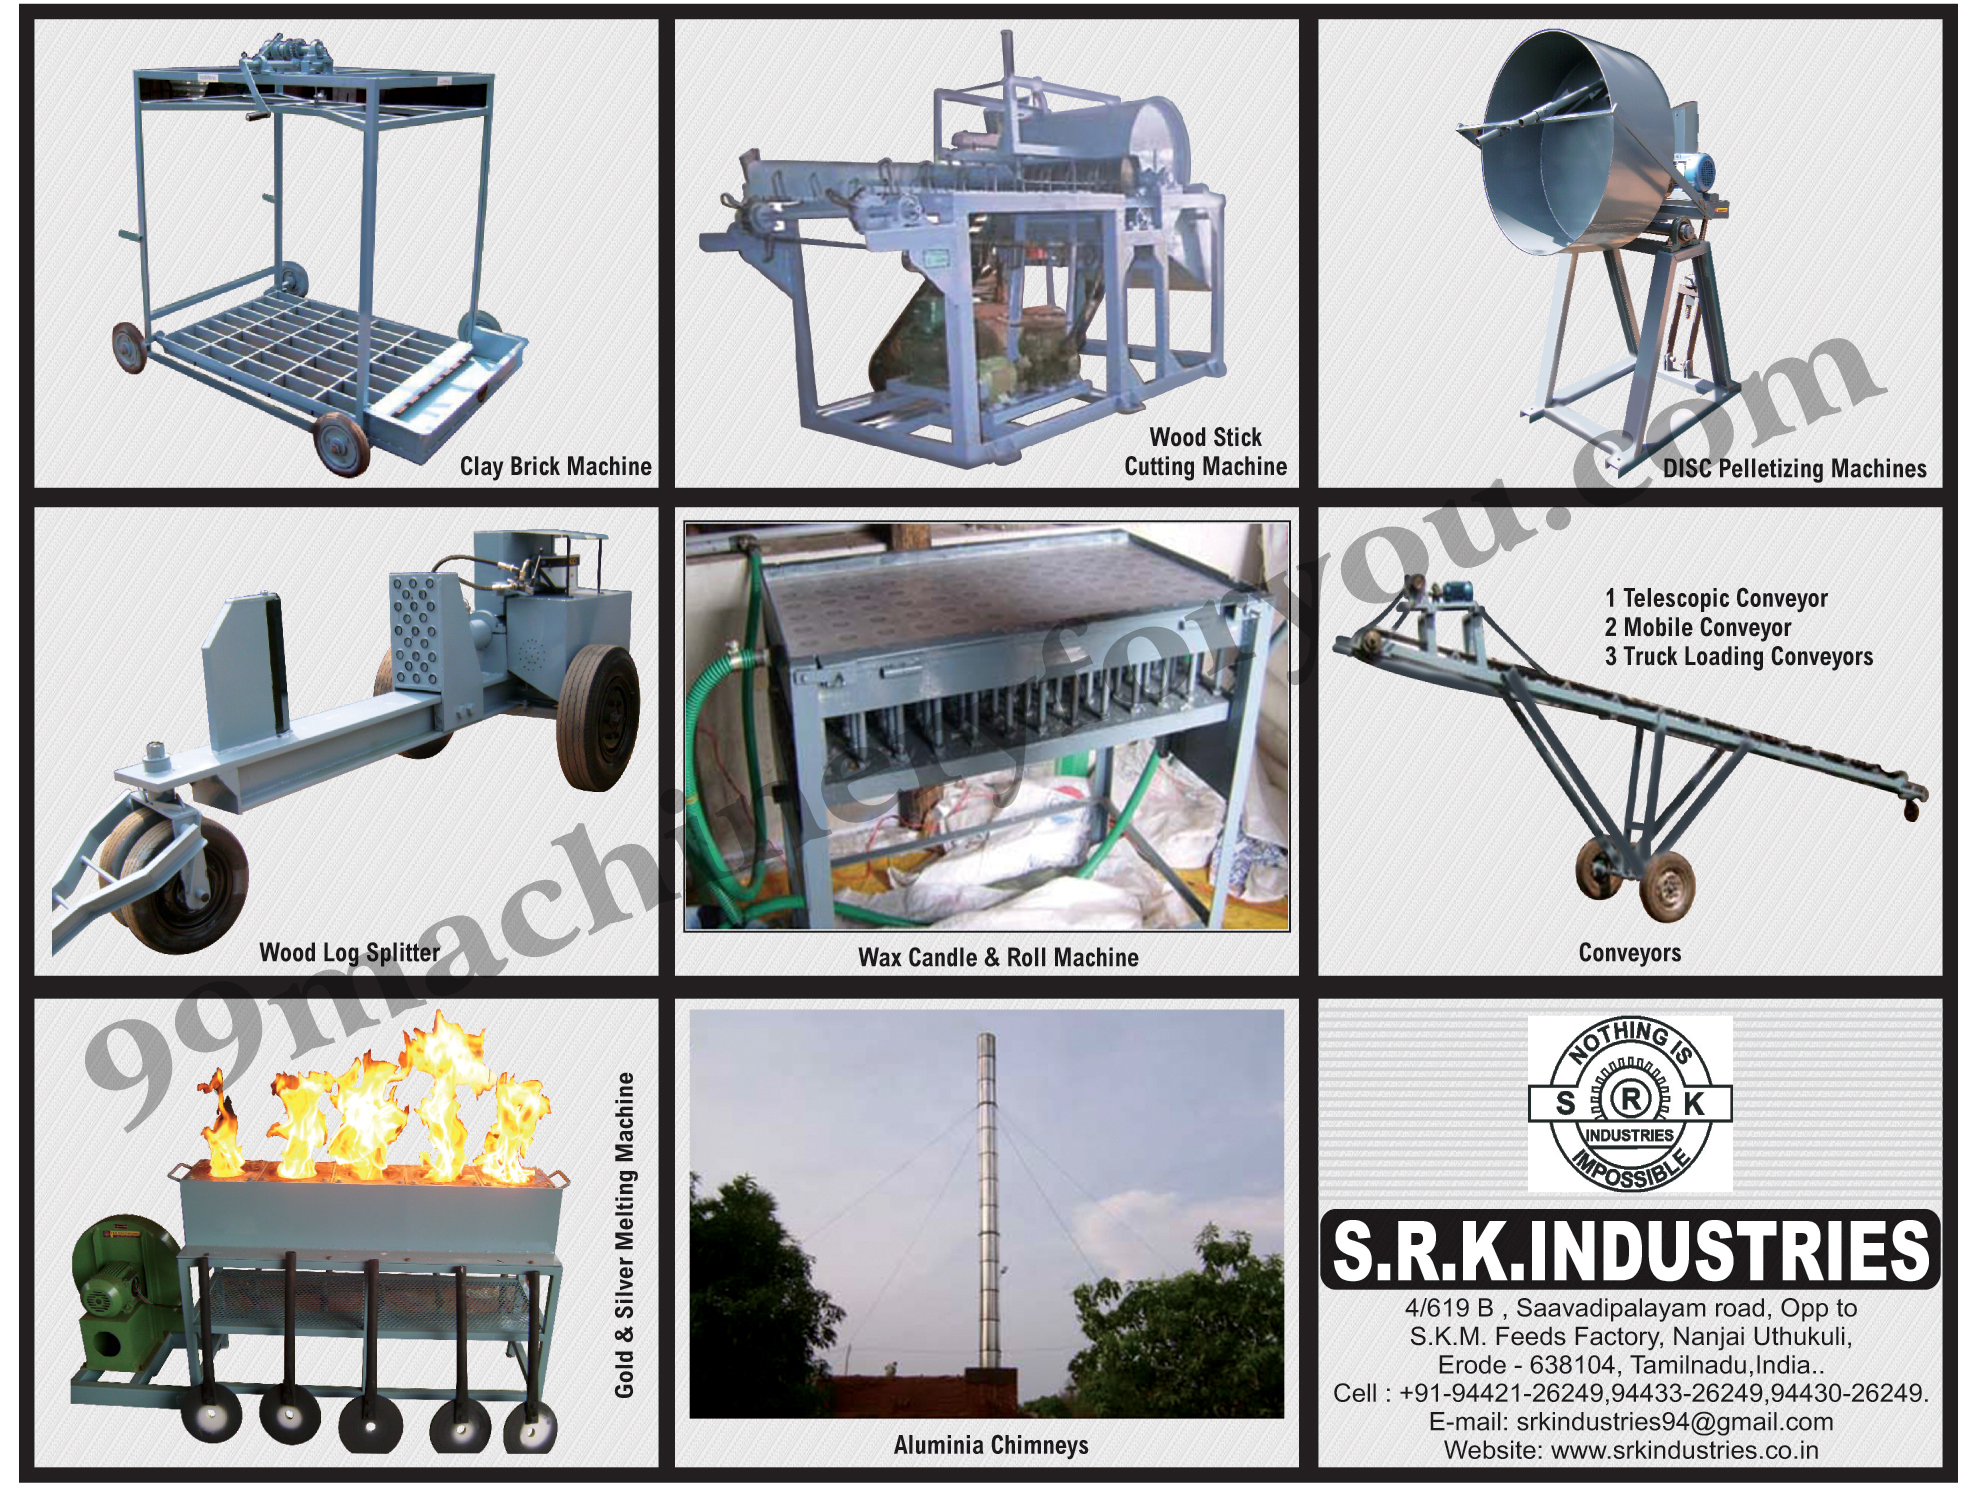 Clay Brick Machines, Wood Stick Cutting Machines, DISC Pelletizing Machines, Wood Log Splitter, Wax Candle Machines, Wax Roll Machines, Telescopic Conveyors, Mobile Conveyors, Truck Loading Conveyors, Gold Melting Machines, Silver Melting Machines, Aluminia Chimney,Conveyors